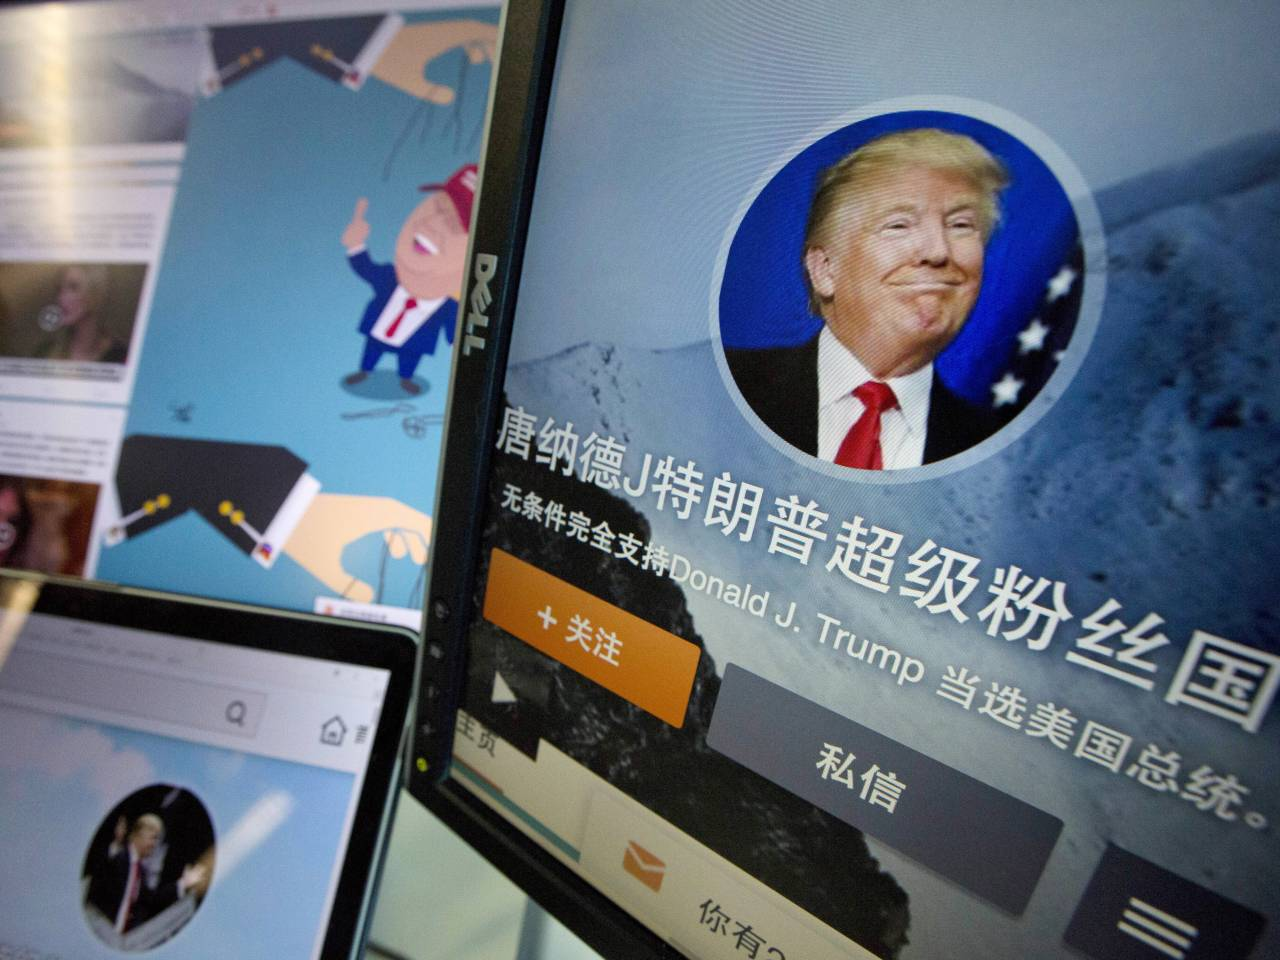 China Grants Trump 38 Trademarks, Reopening Debate About Conflicts Of Interest